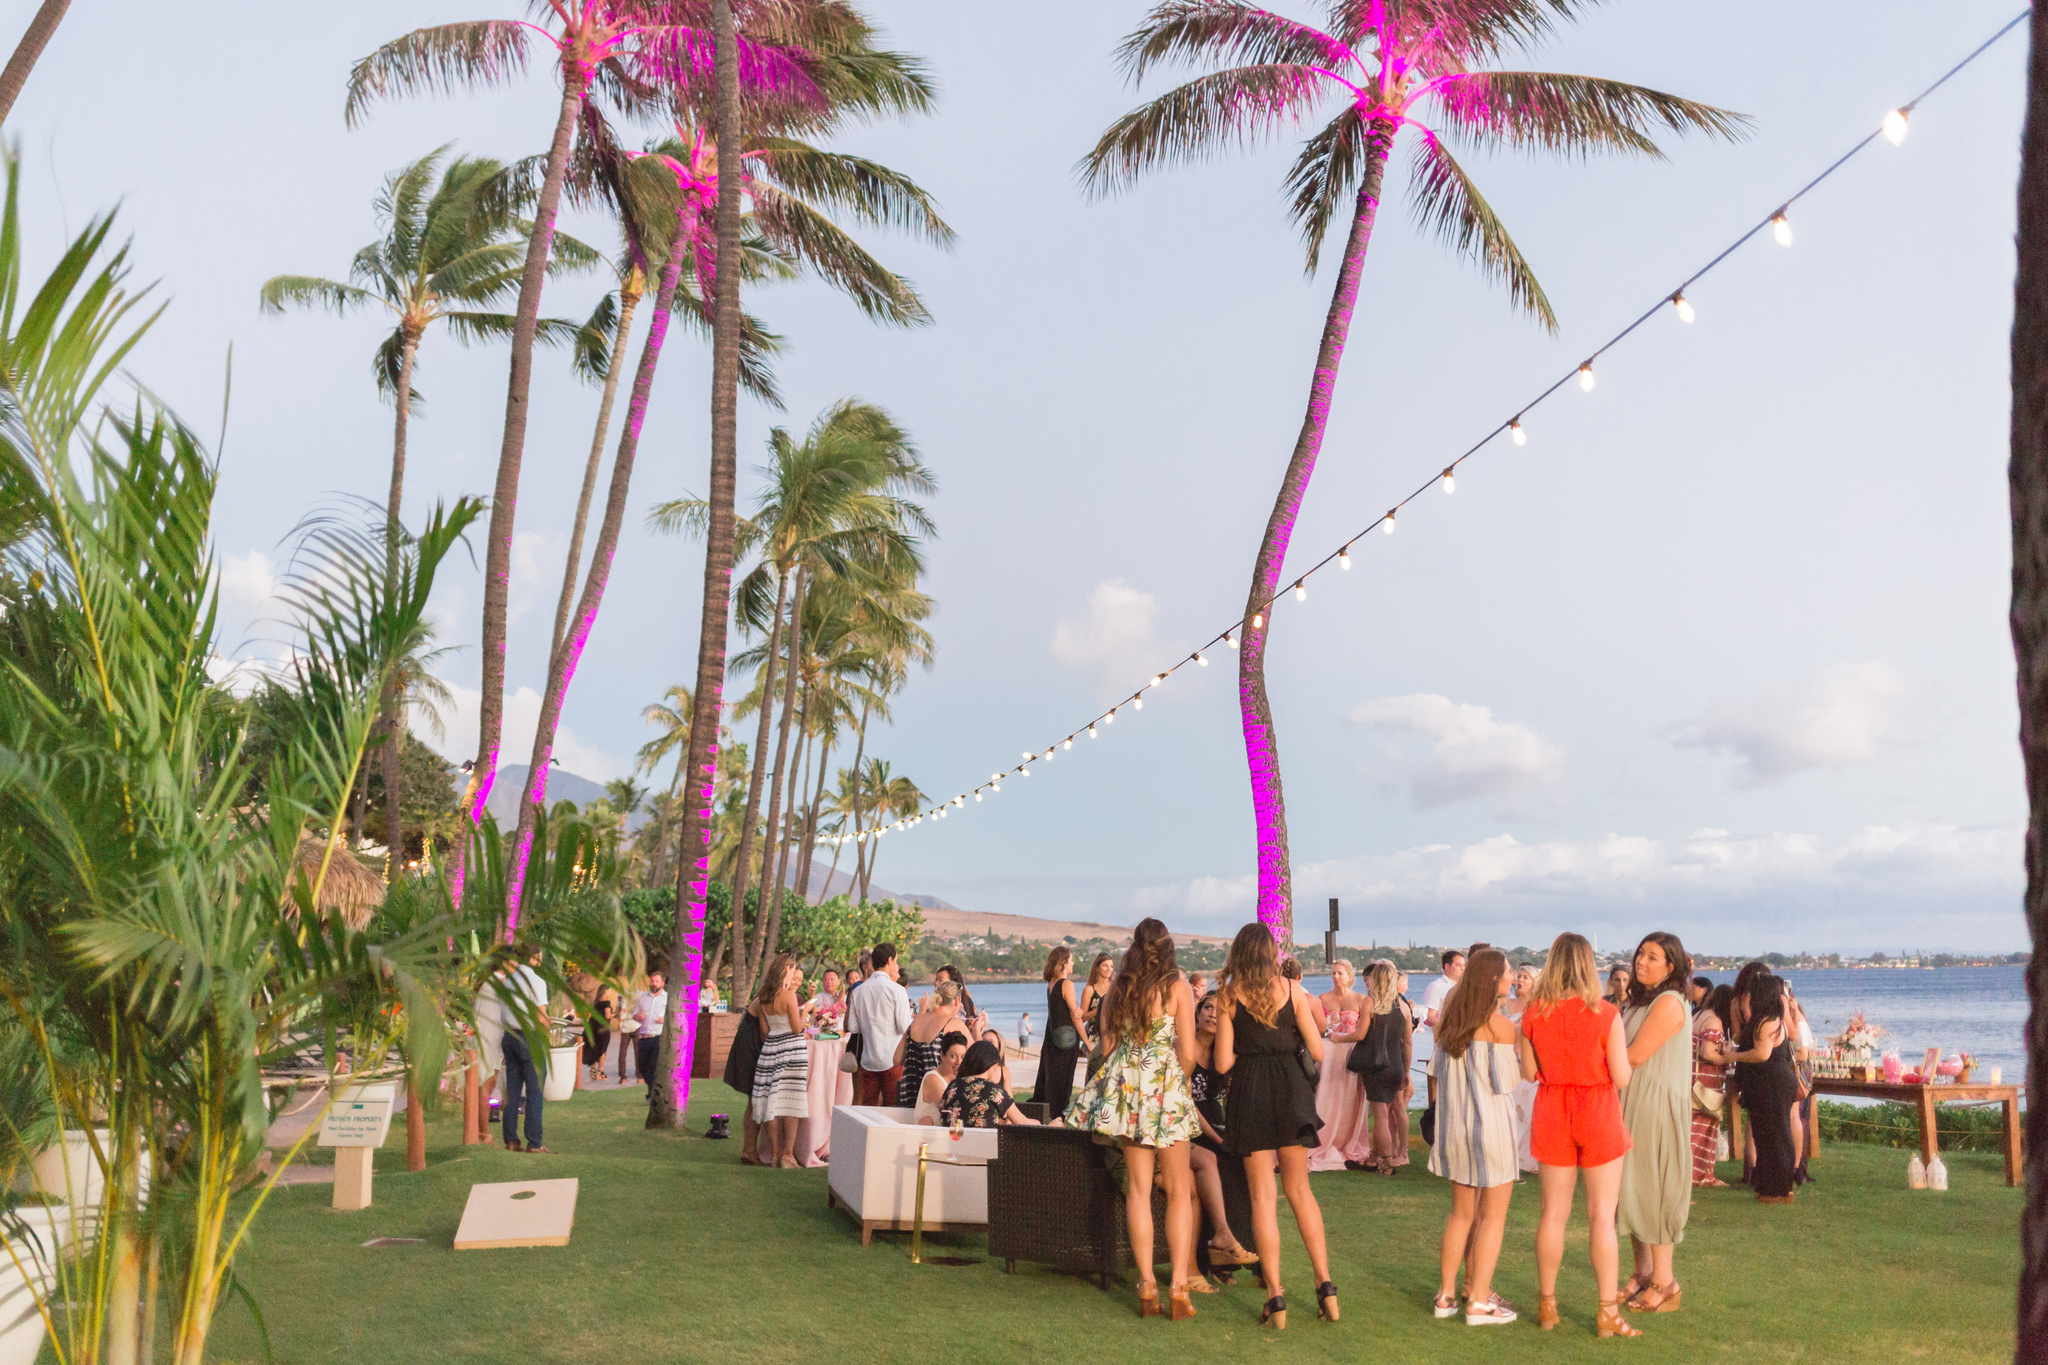 Tassels and Tastemakers Maui 2017